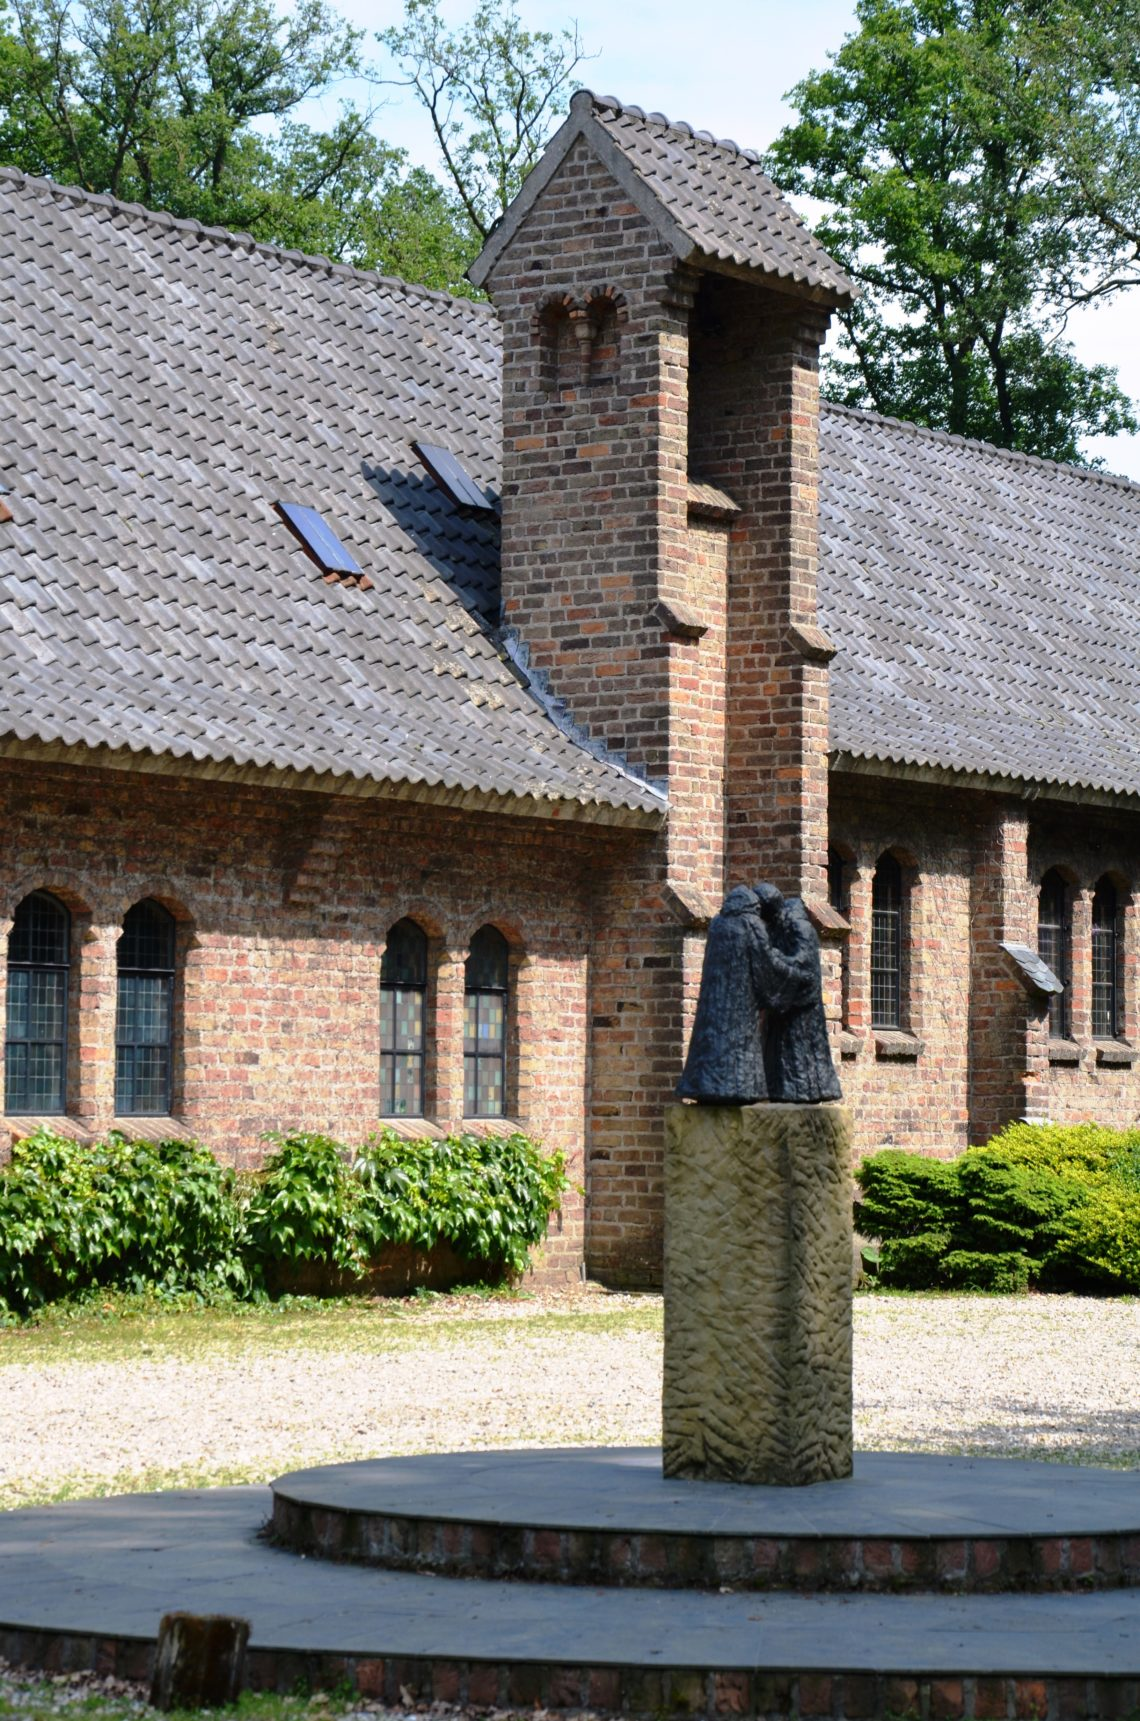 To the right of the entance to the Willibrordus abbey, with a small statue of franciscan brothers on a pilar in front. Part of the abbey in the back with green bushes in front and tower bell in the middle.